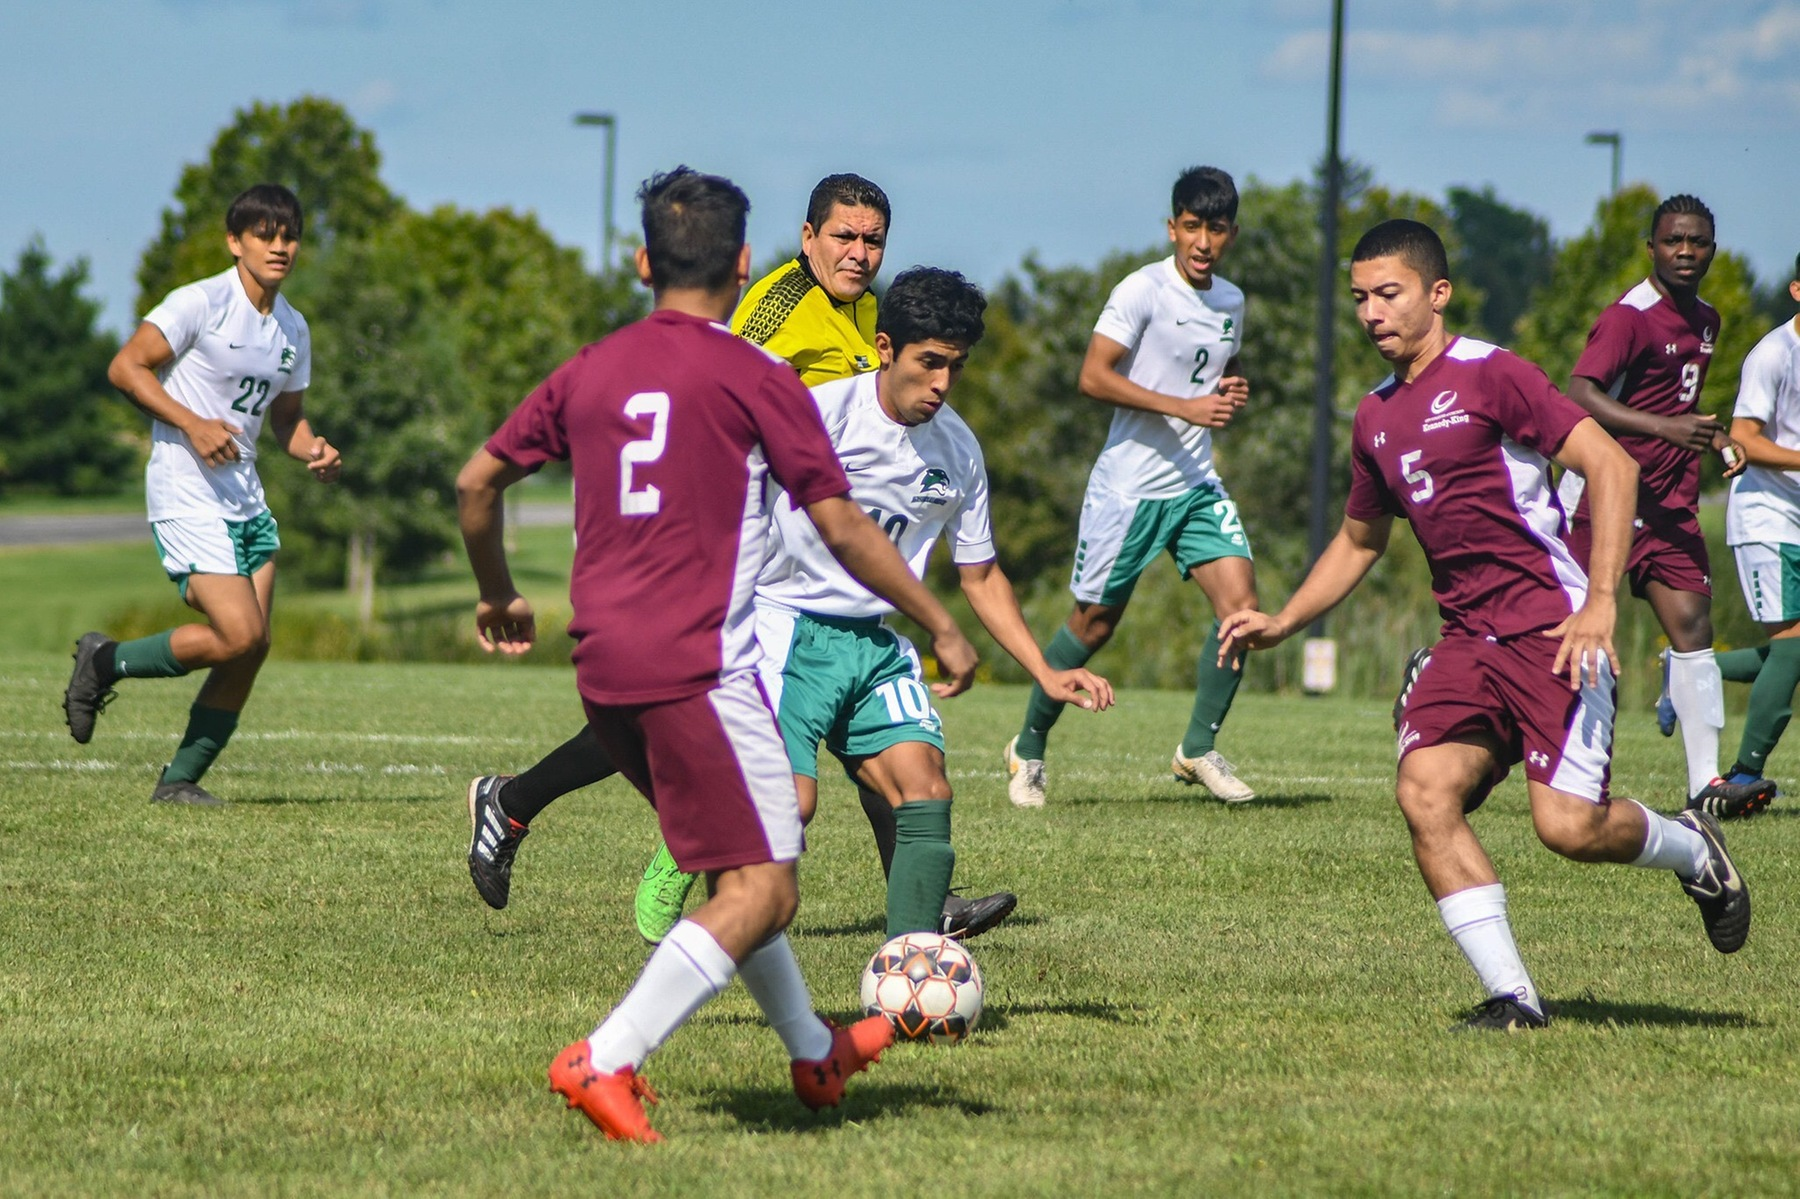 Kish off to a great early season start for Men's Soccer